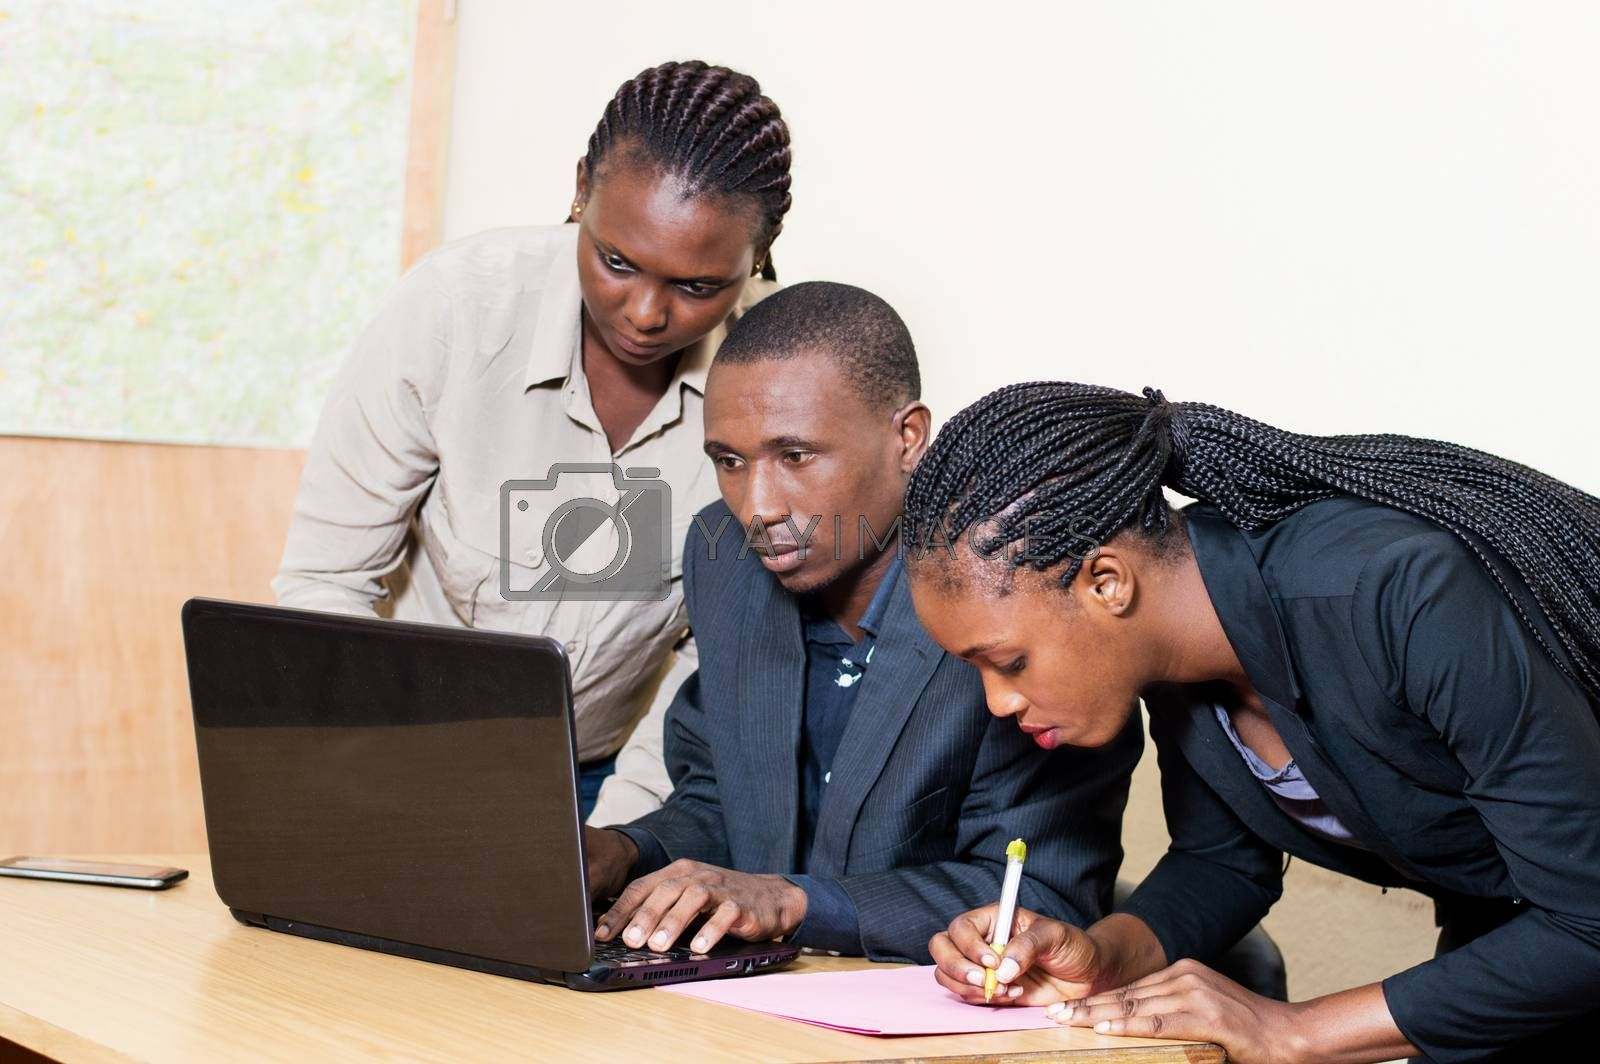 Three business partners working on a laptop in the office.